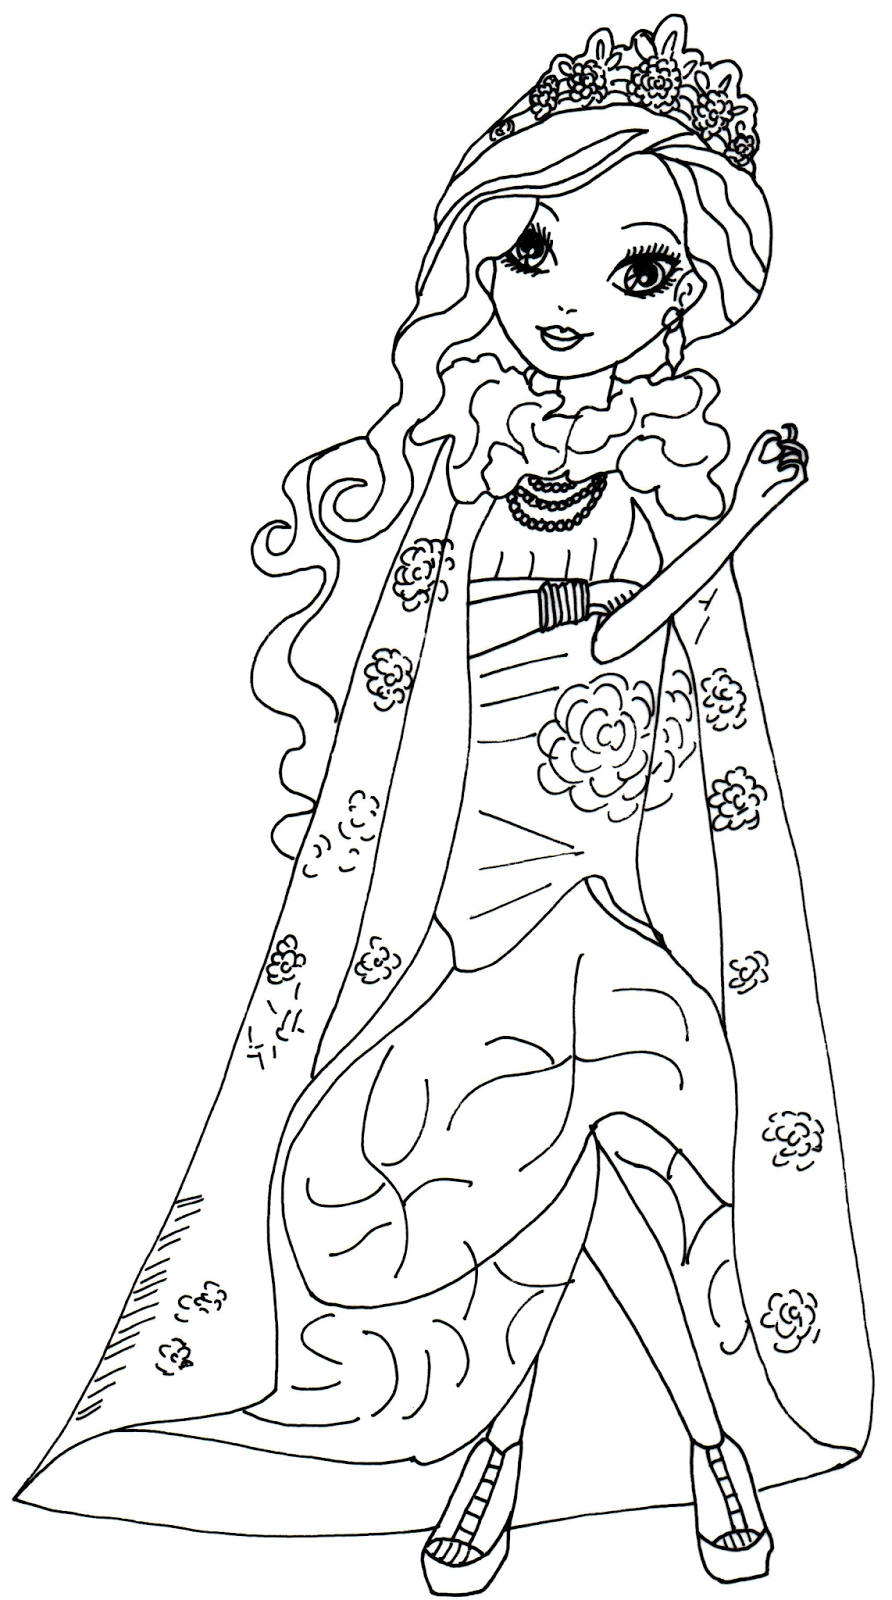 15 dessins de coloriage ever after high holly o 39 hair - Coloriage prin ...